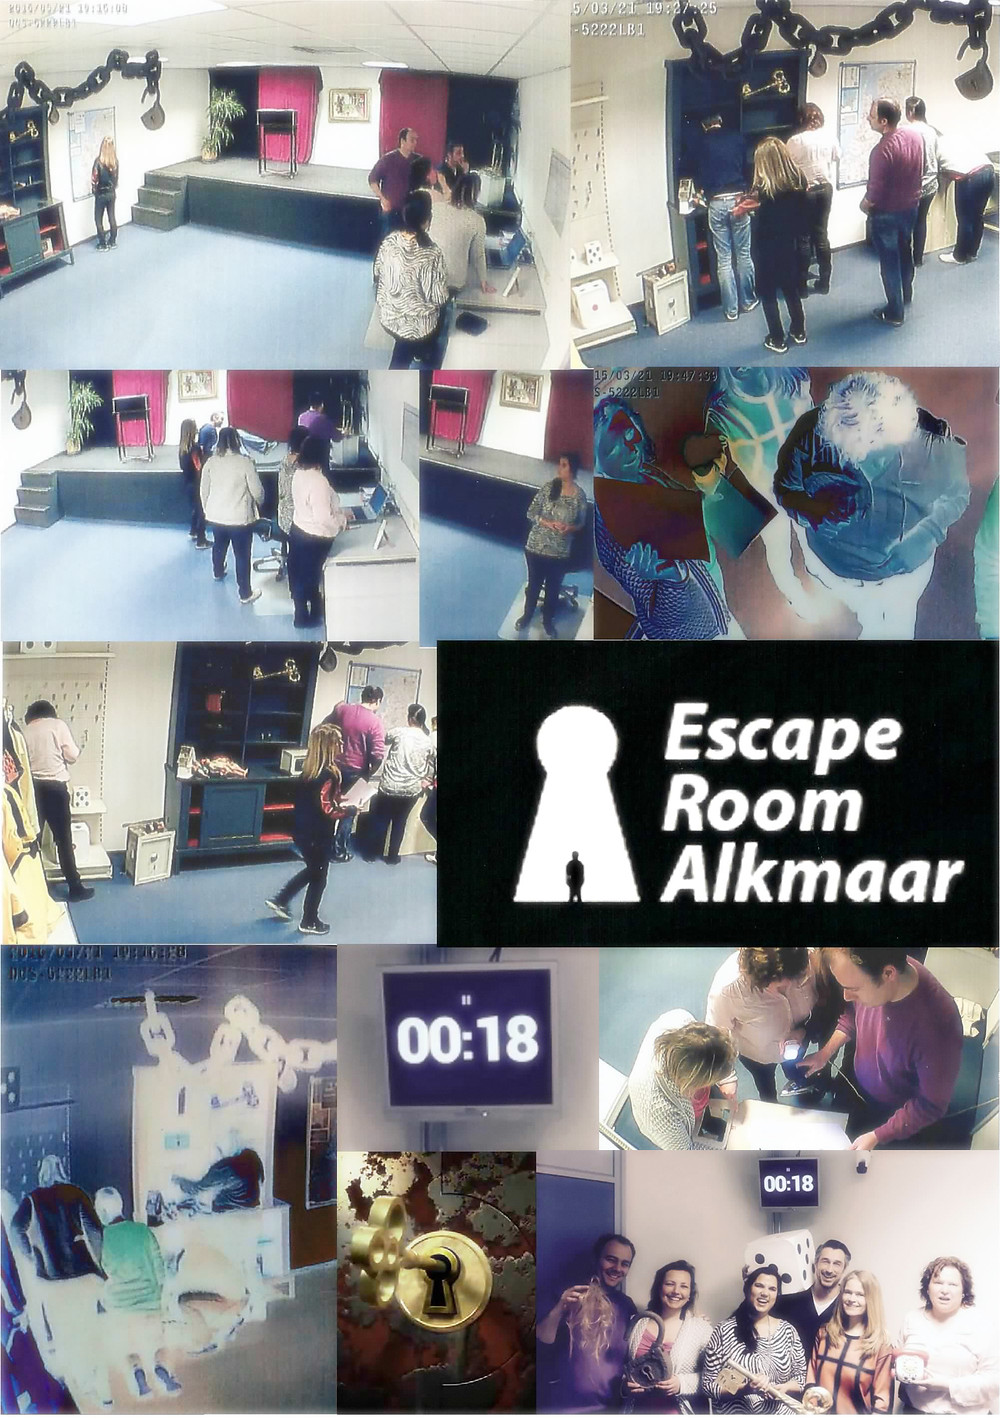 escape room Alkmaar3.jpg